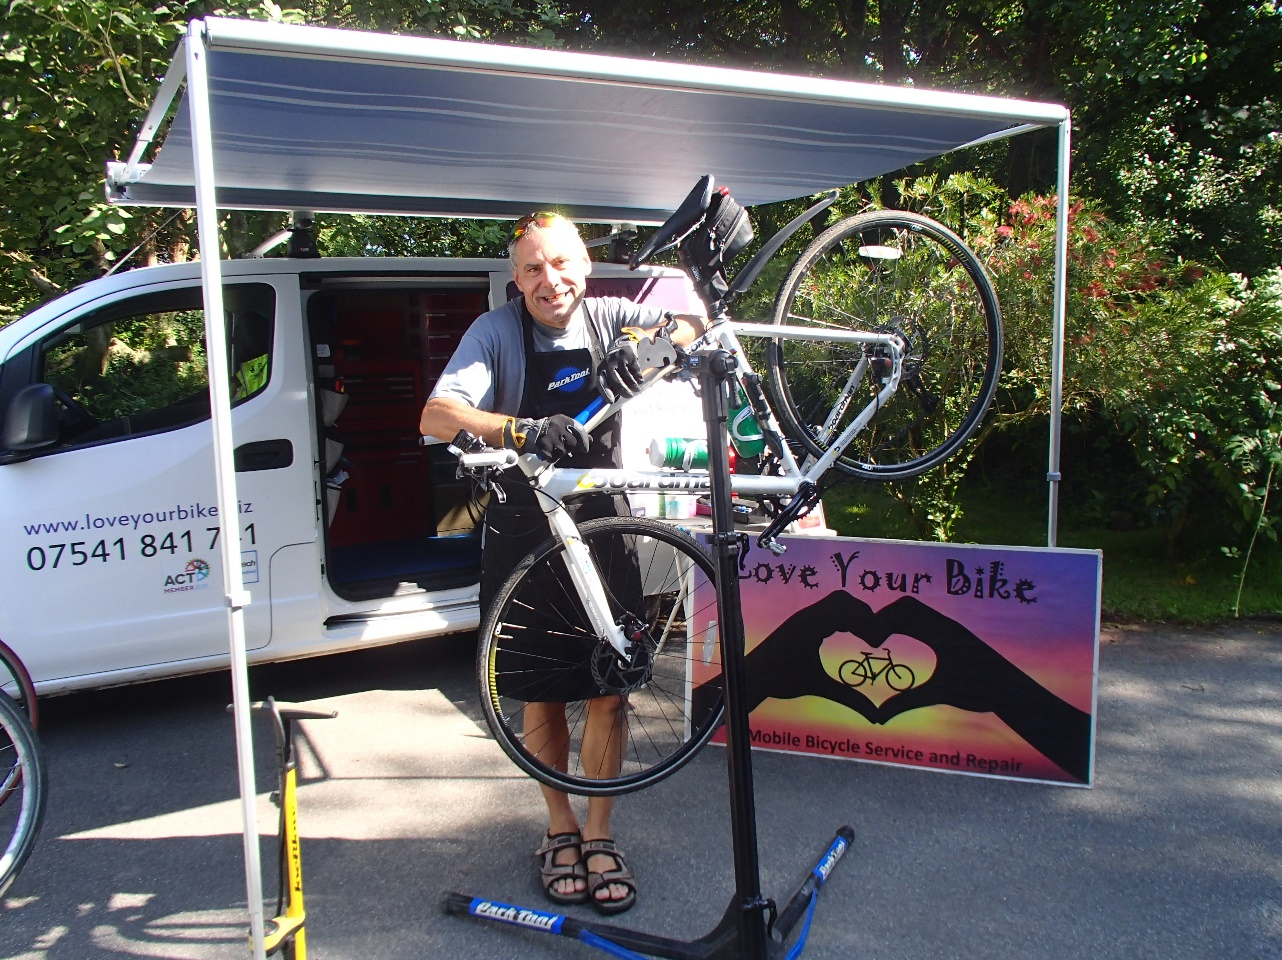 Mobile Bike repairs near Bude in North Cornwall